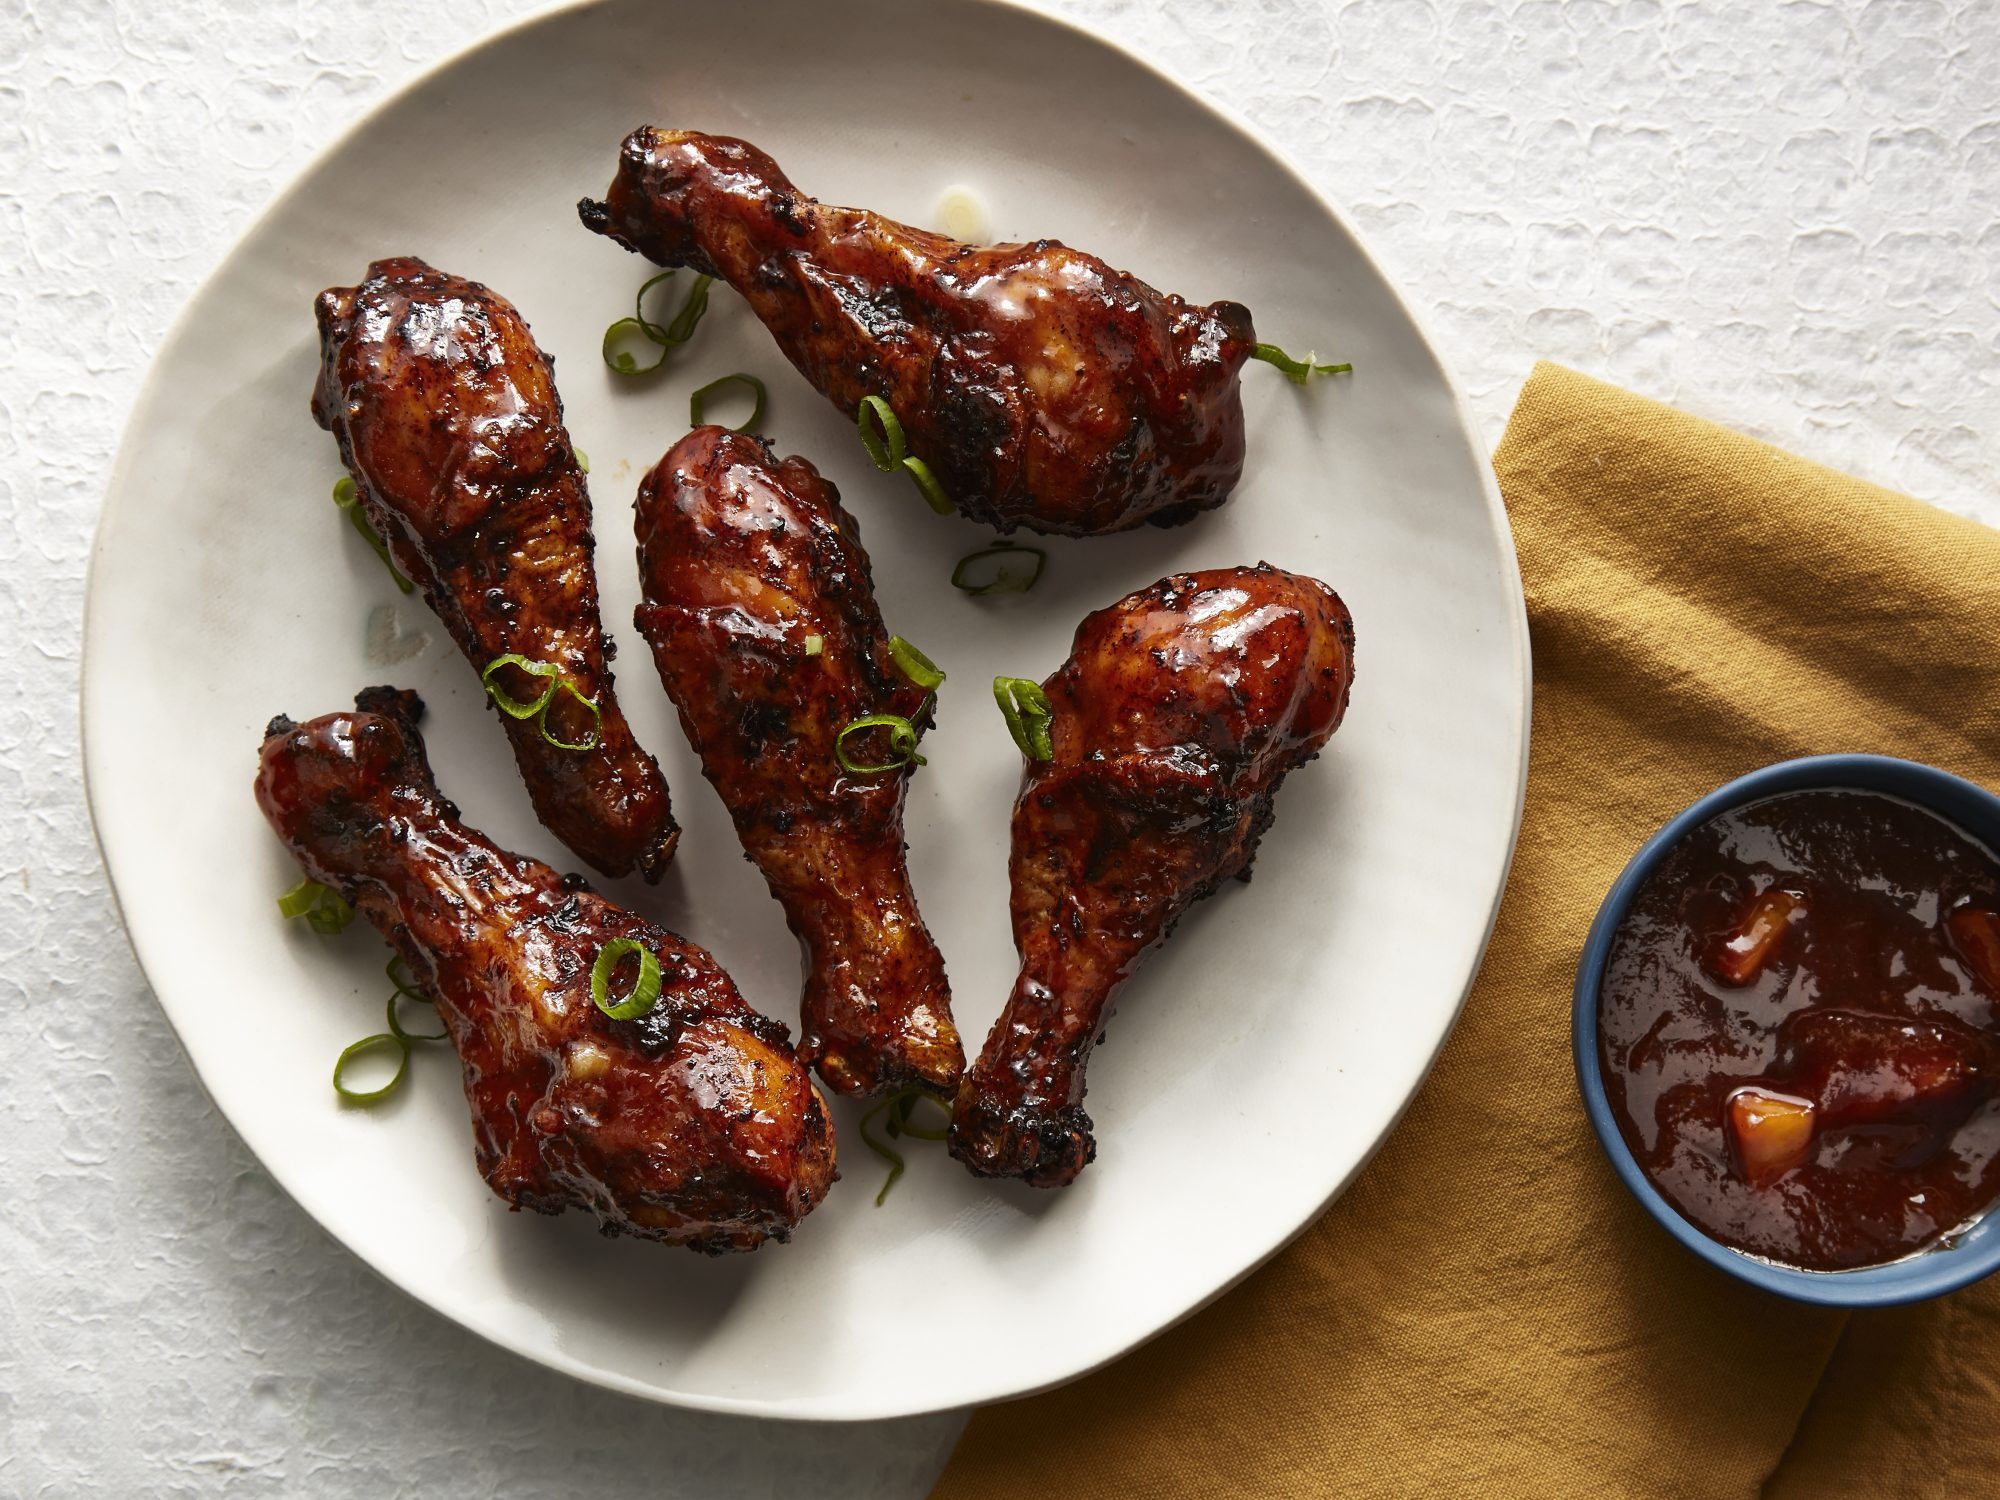 oven-fried-chicken-drumsticks-in-peach-barbecue-sauce